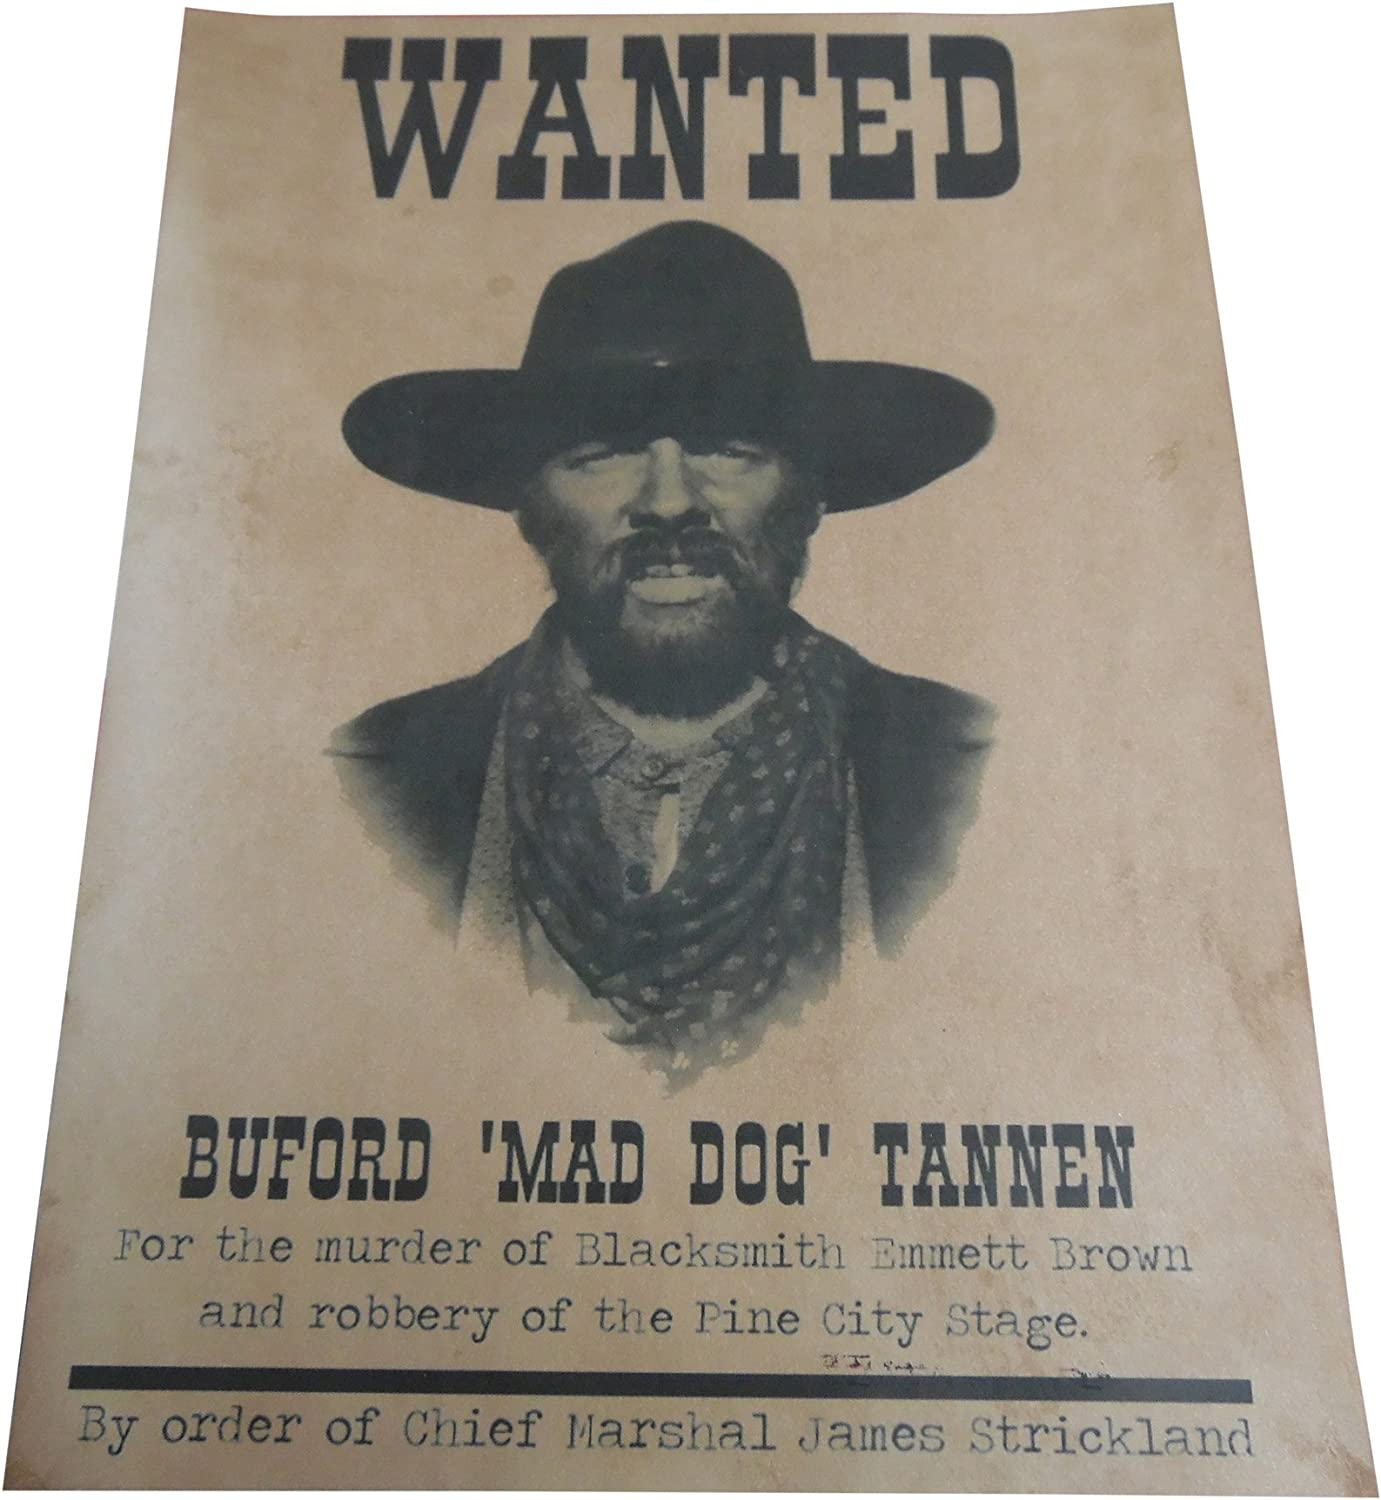 Buford 'Mad Dog' Tannen outlaw wanted poster replica prop